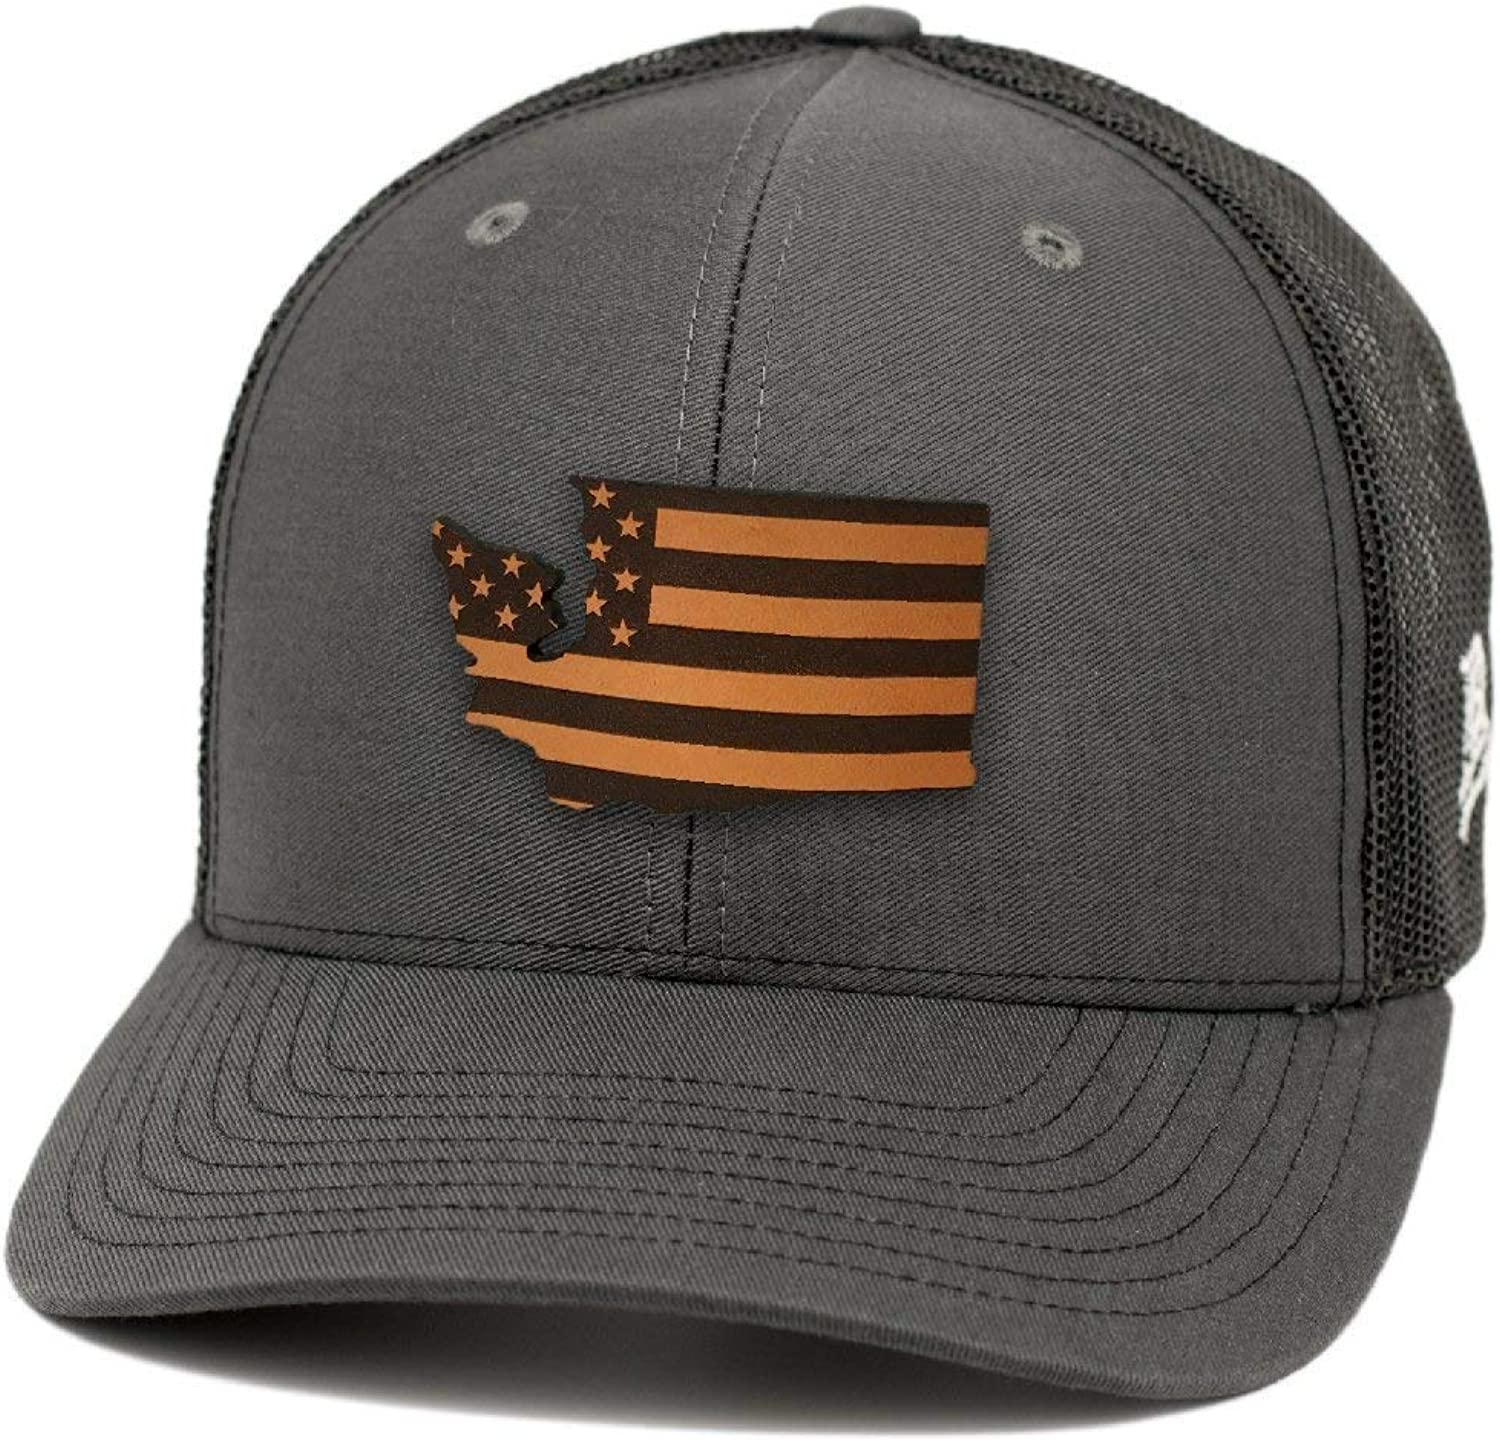 Branded Bills Washington Patriot Leather Patch Hat Curved Trucker